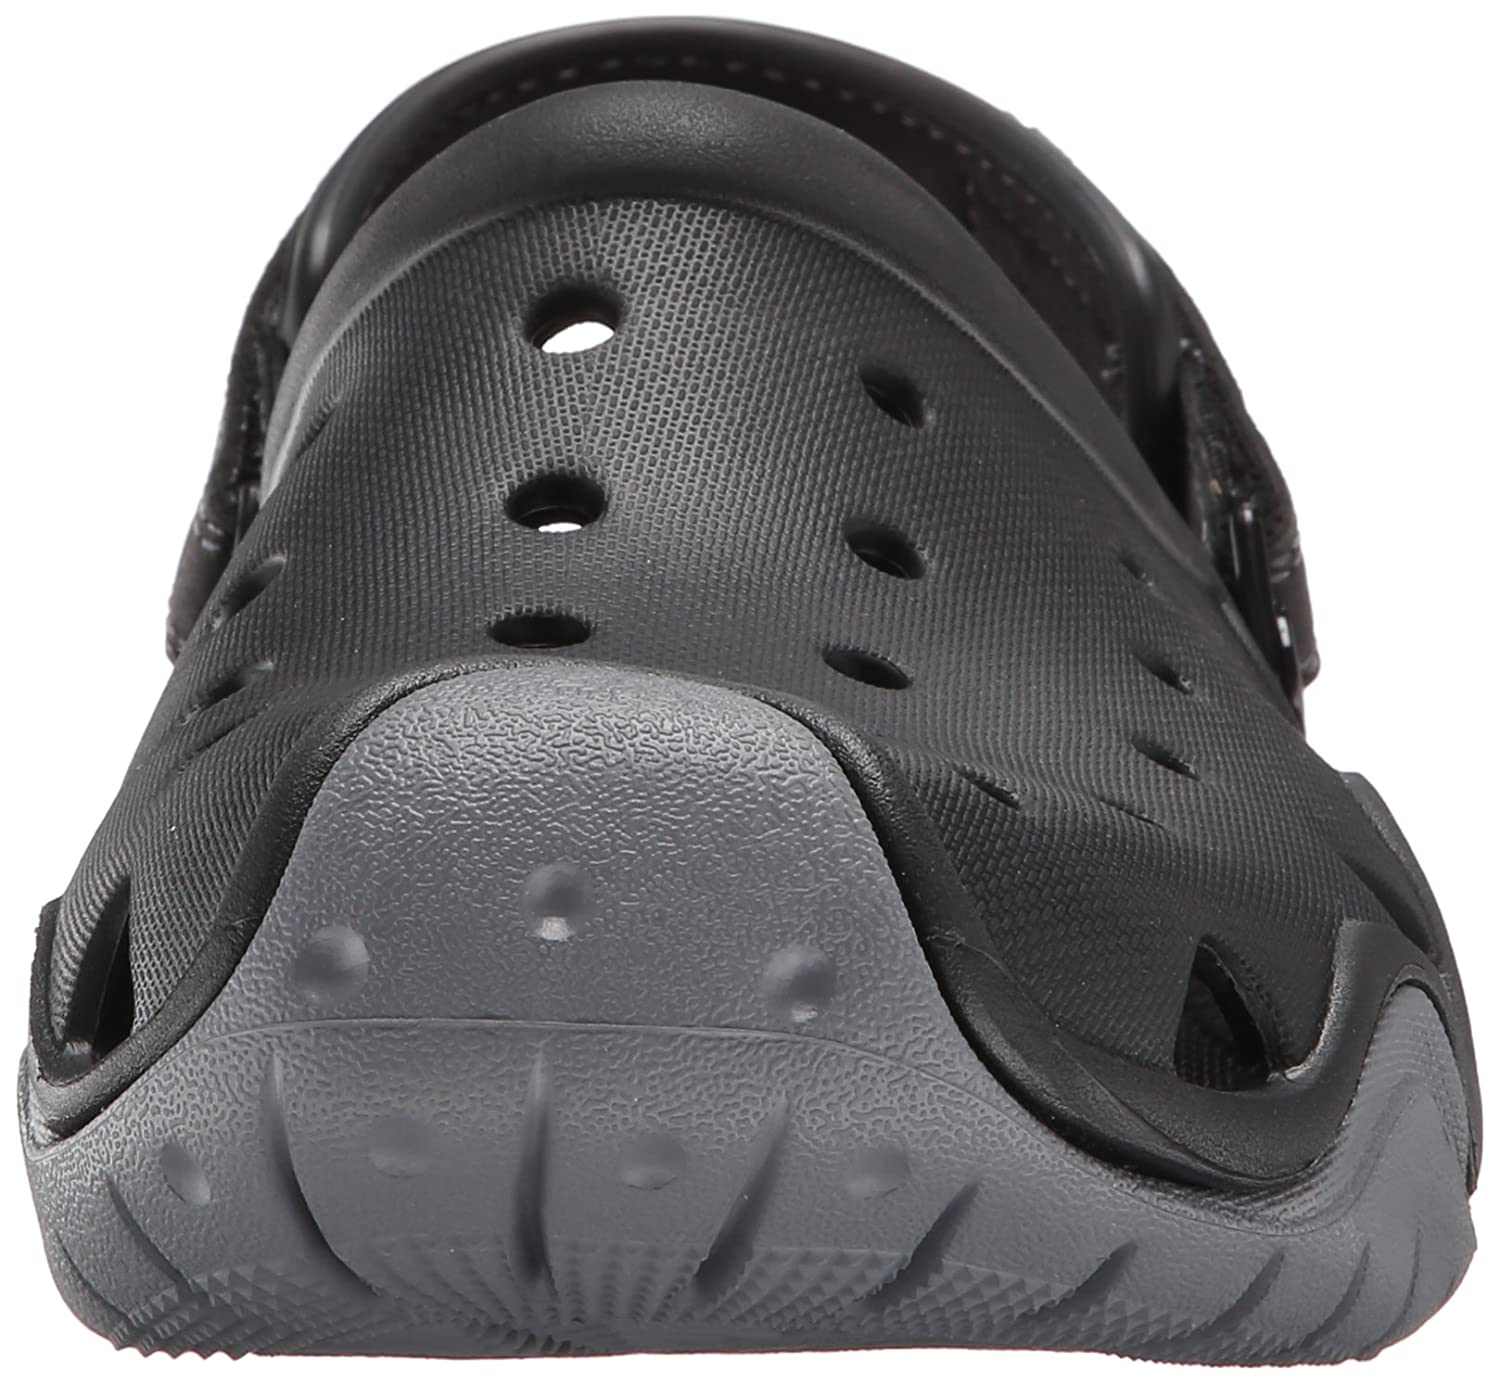 d113fca5d16c6 Crocs Swiftwater Men Clogs  Amazon.co.uk  Shoes   Bags